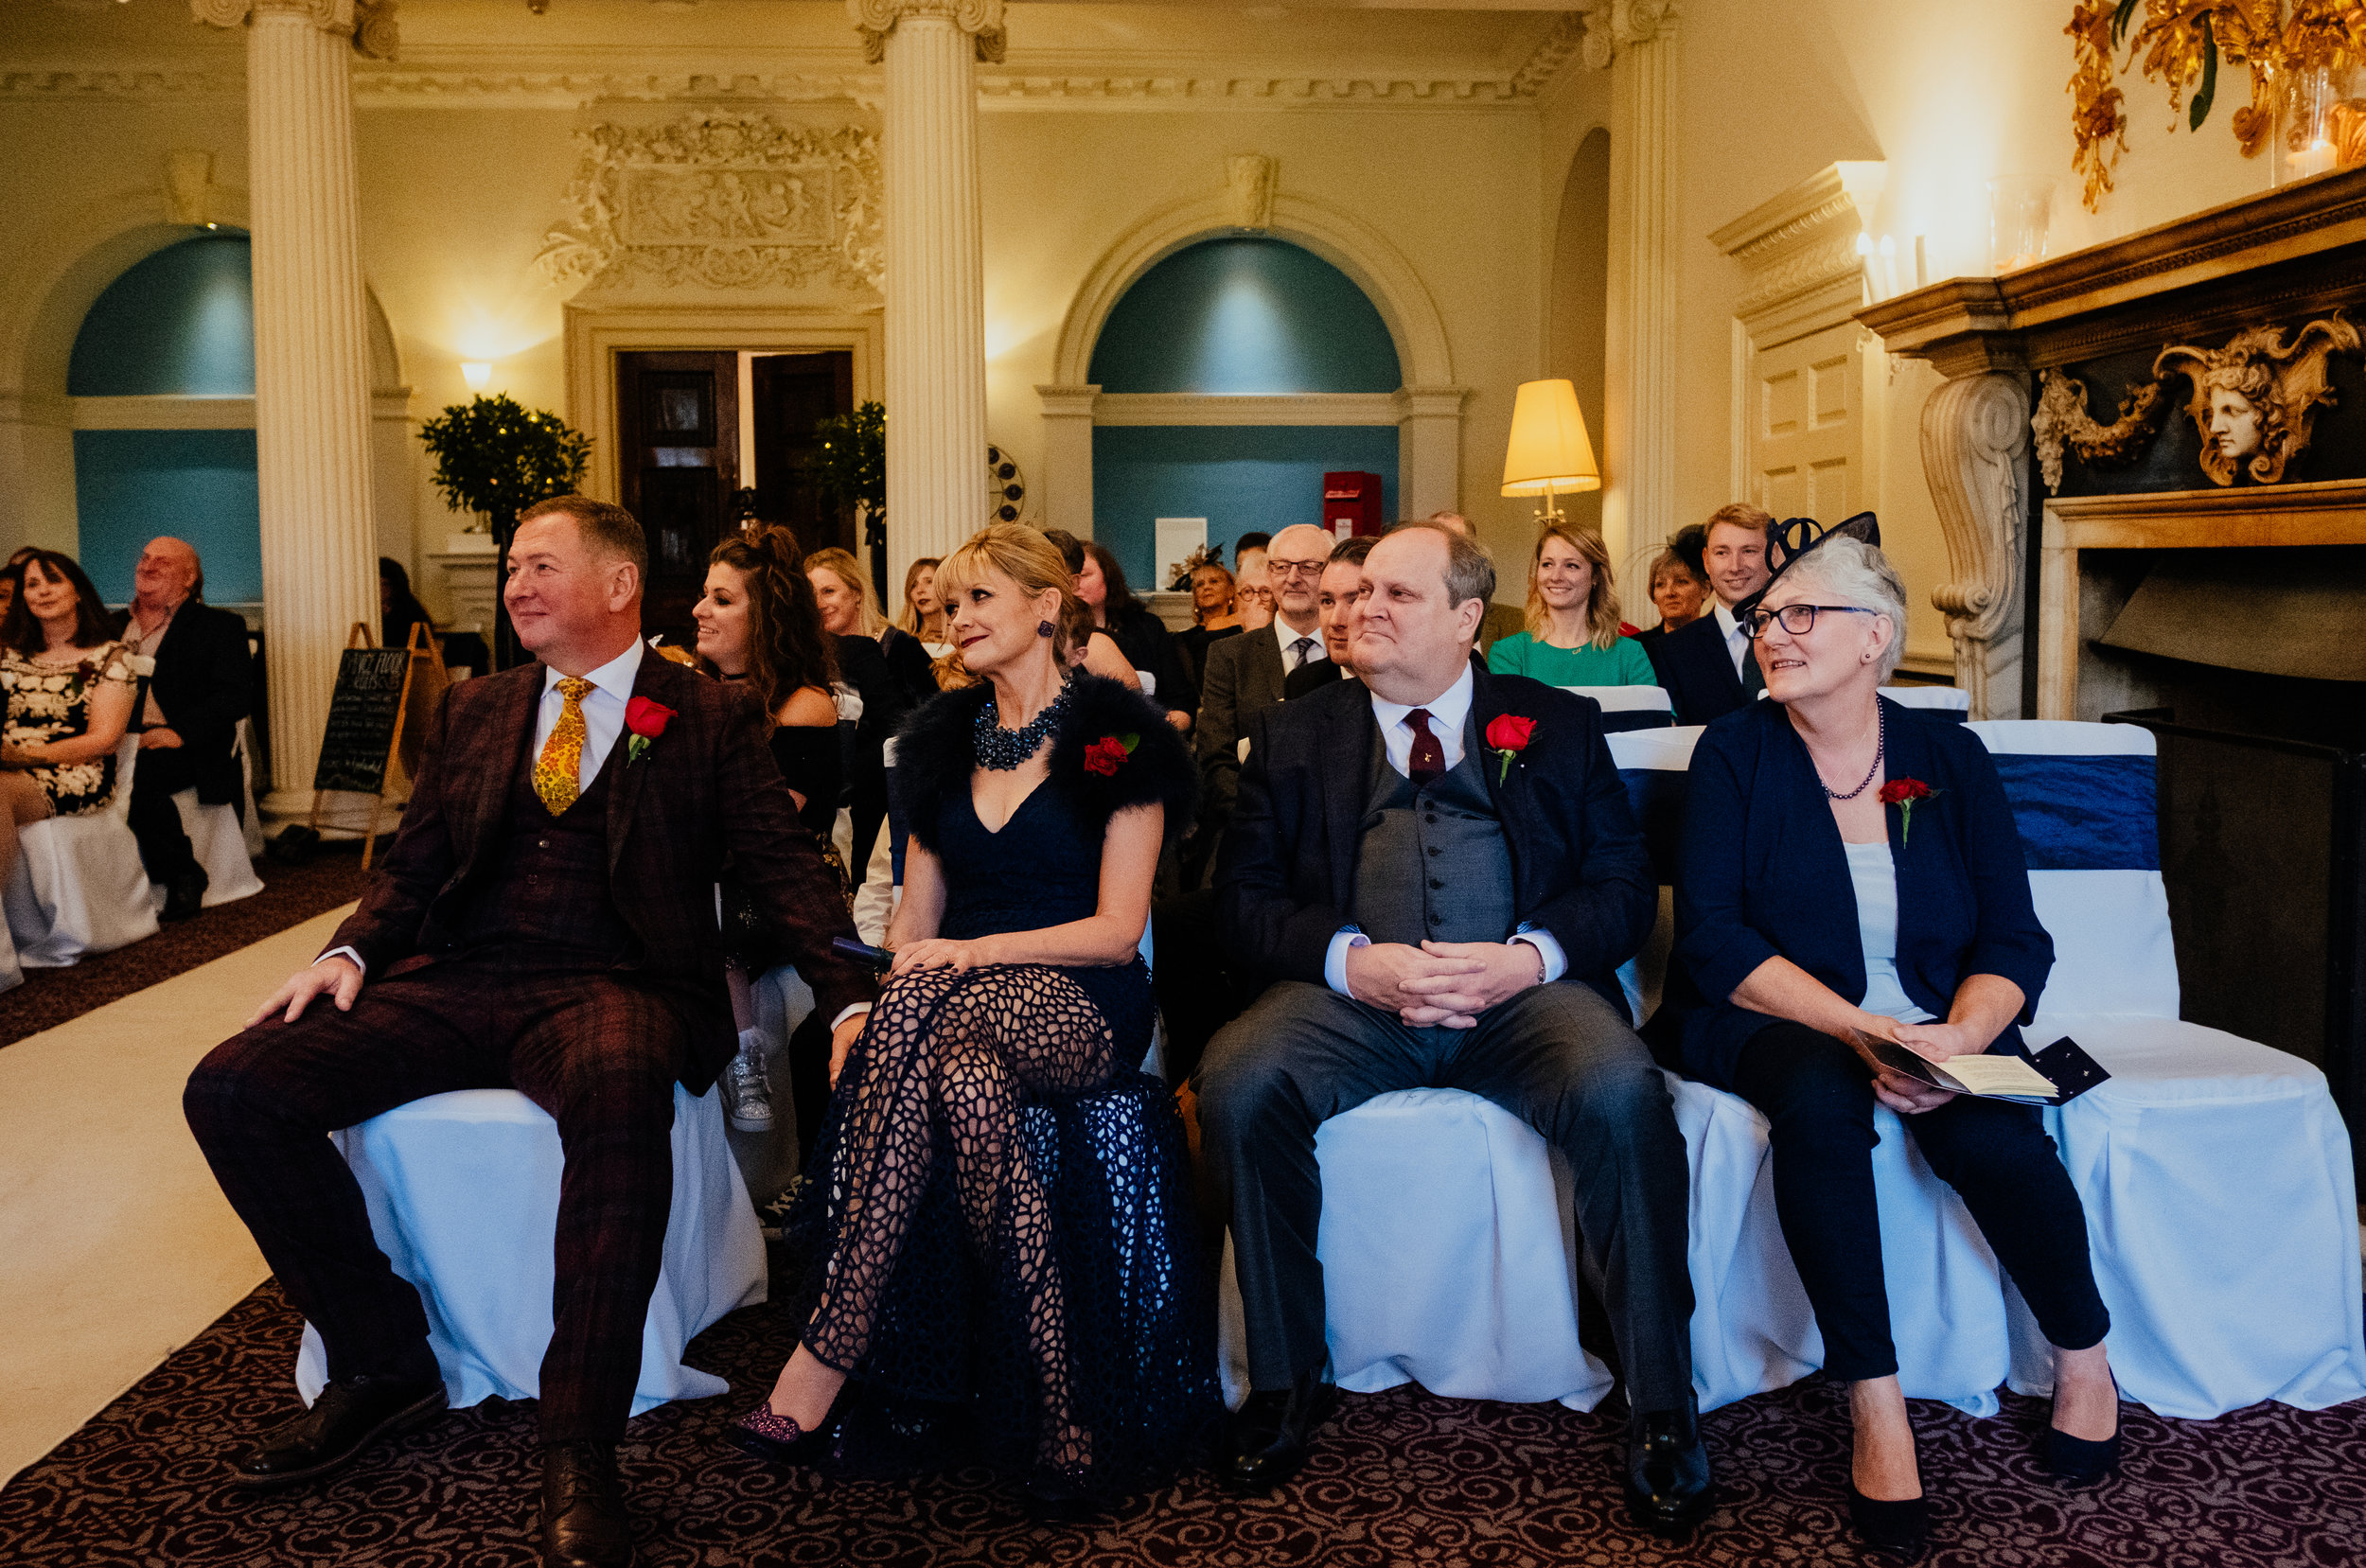 Buxted House Hotel wedding parents of the bride and parents of the groom watch ceremony